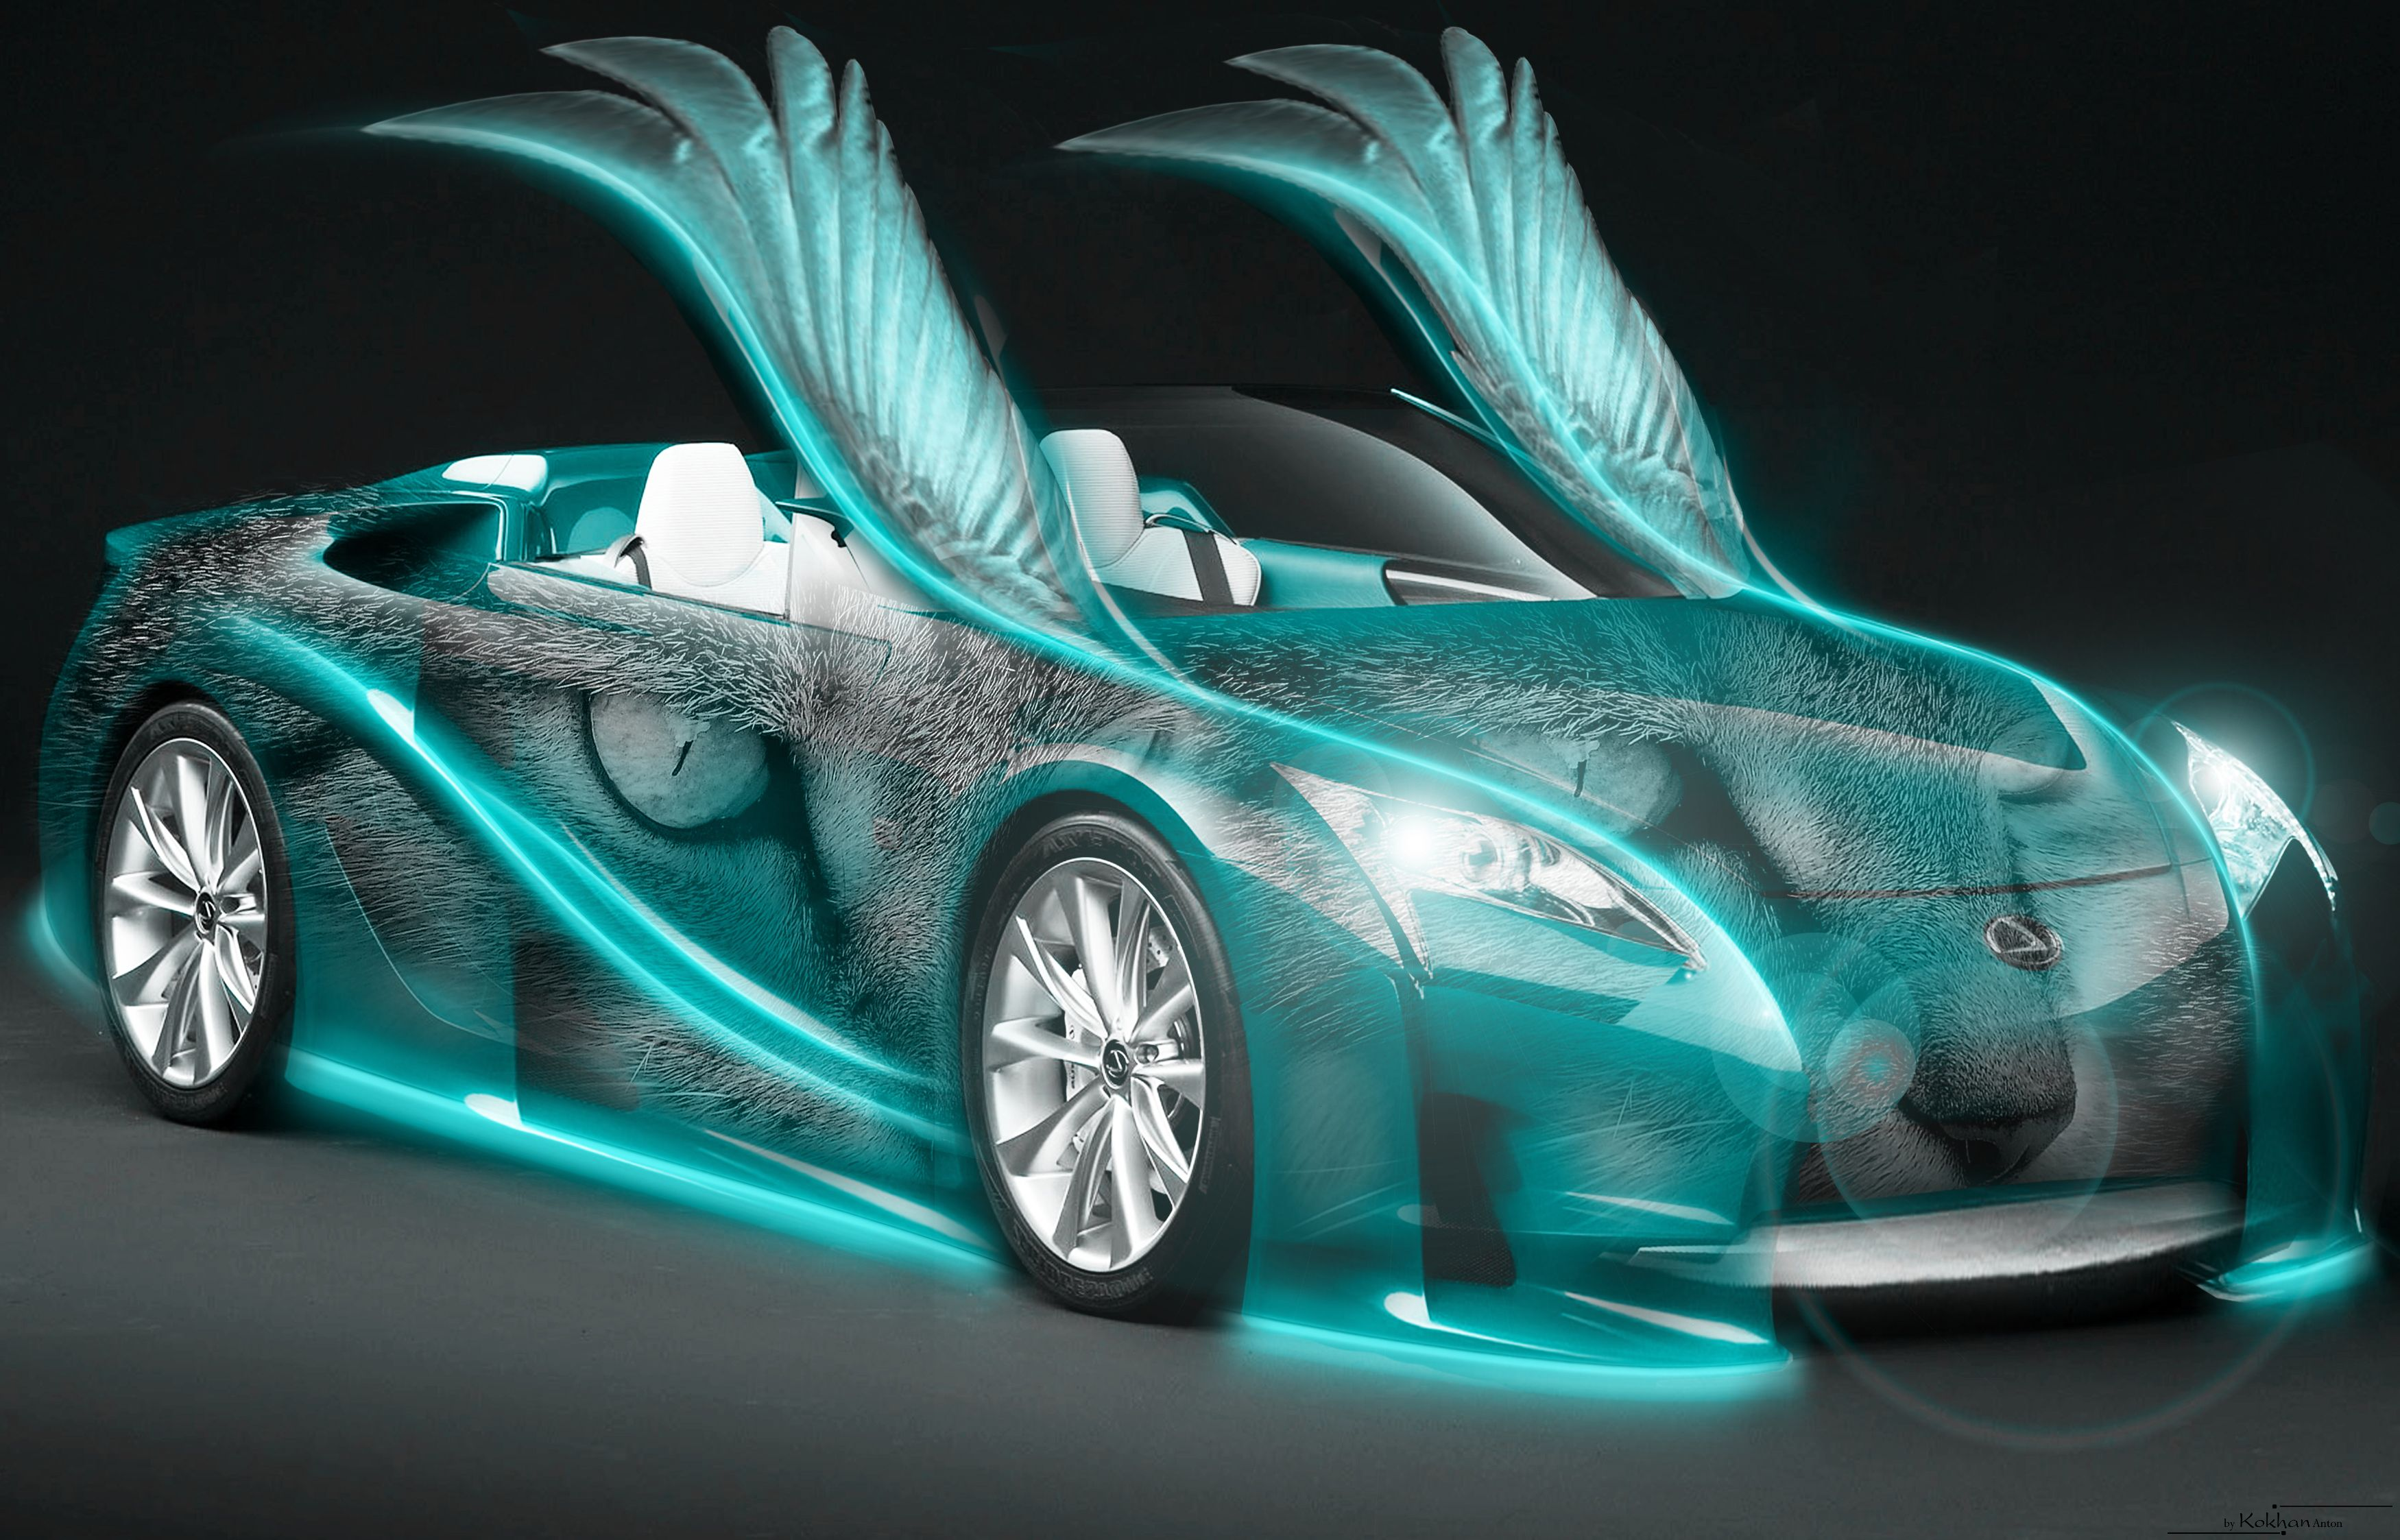 Cool Neon Cars Wallpapers Top Free Cool Neon Cars Backgrounds